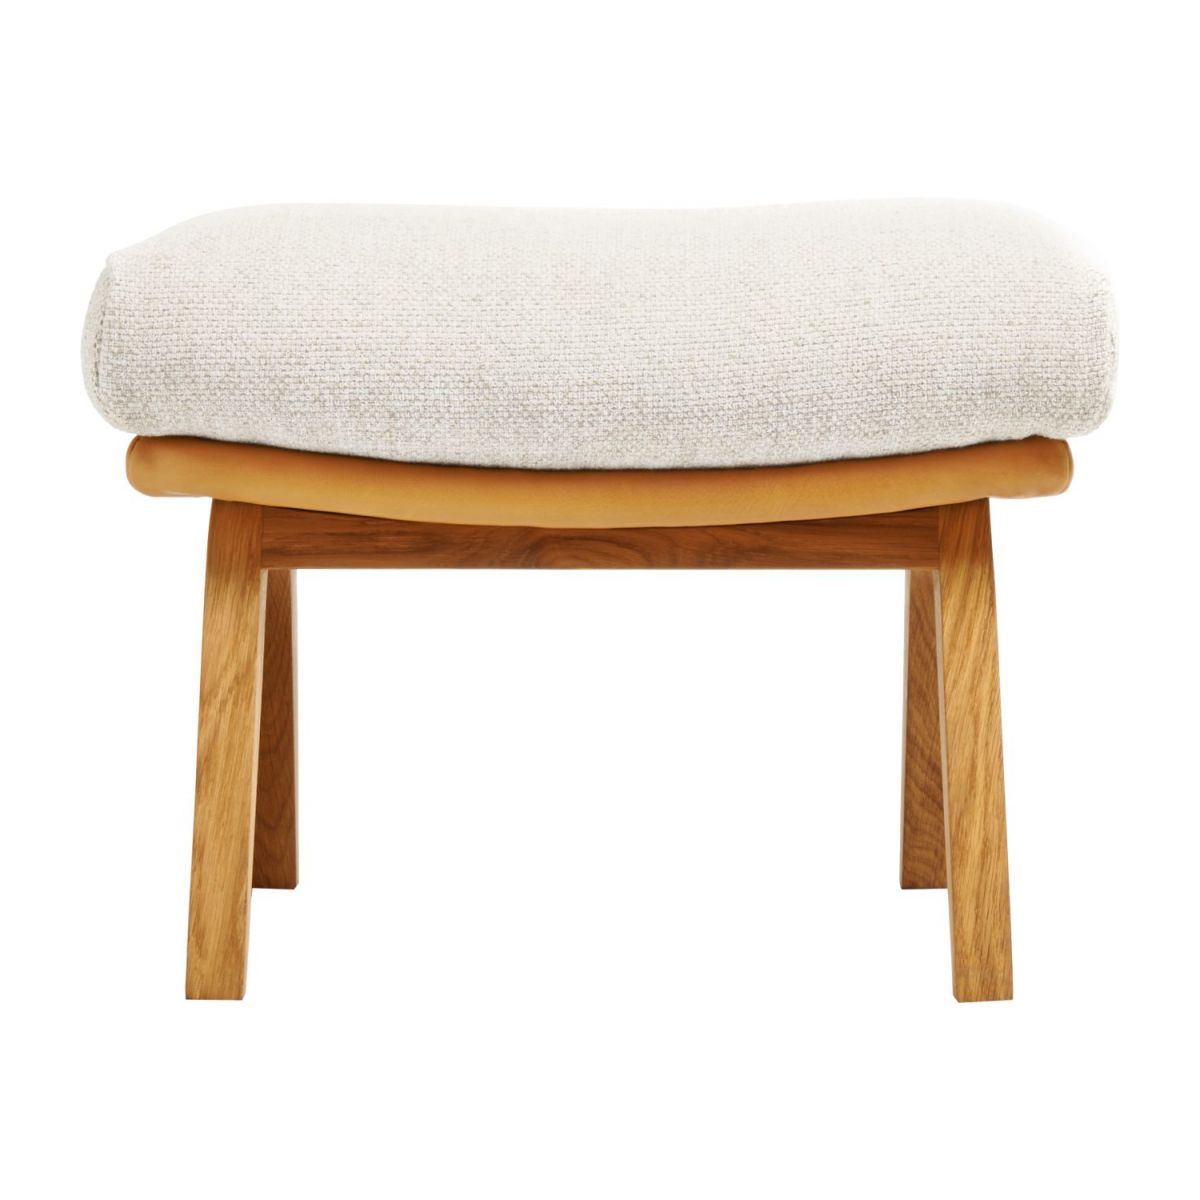 Footstool in Ancio fabric, nature et cuir marron with oak legs n°1